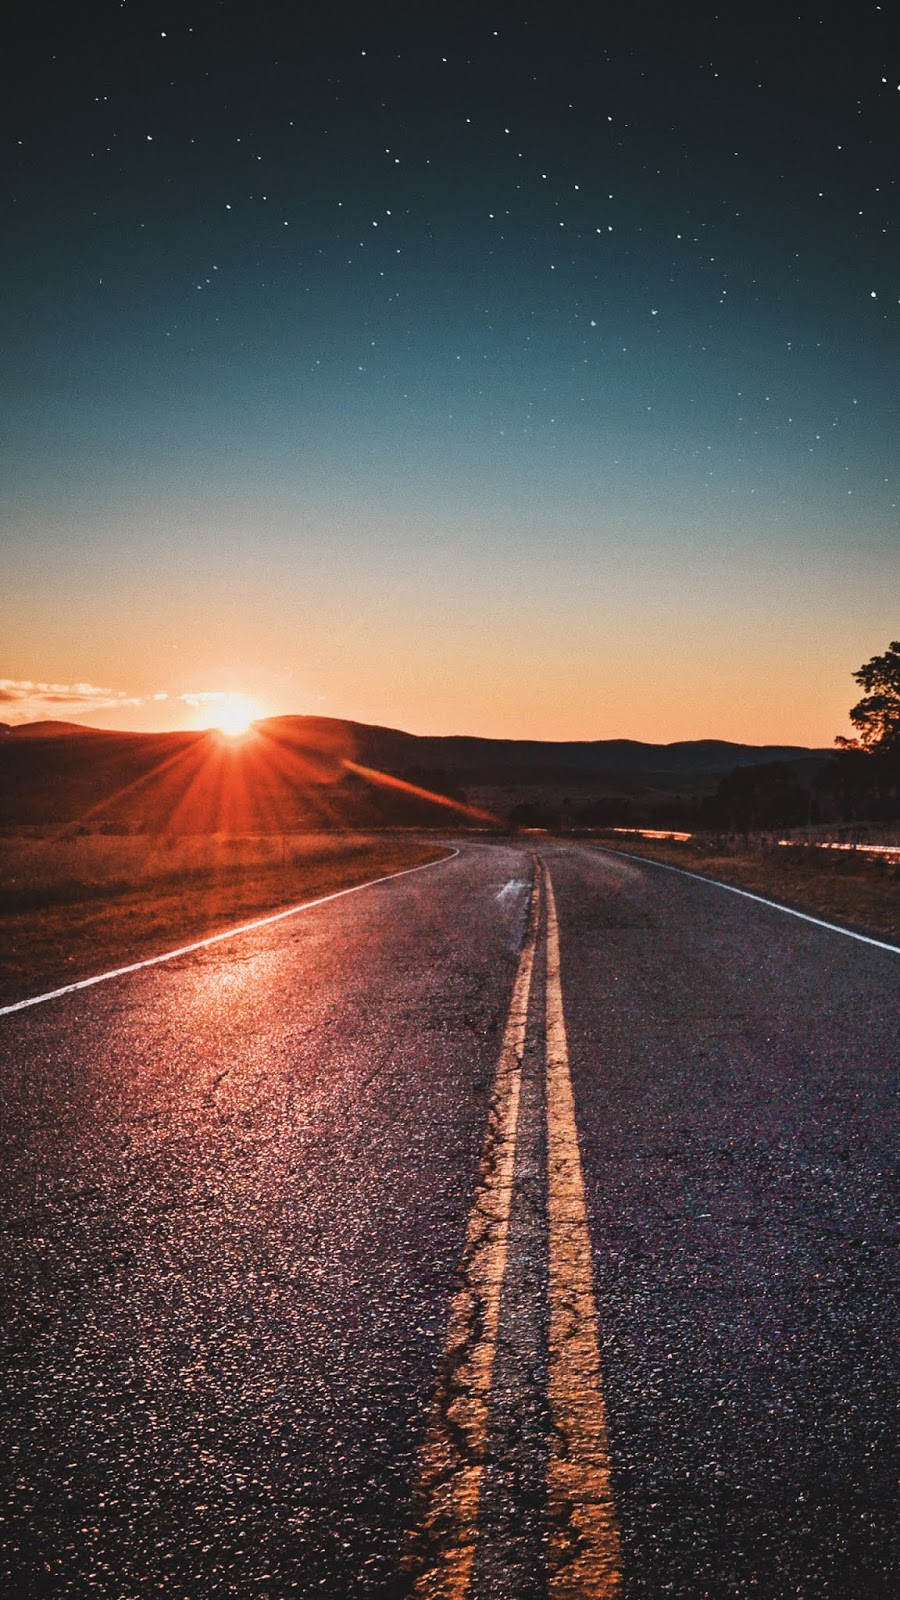 Road in the sunset